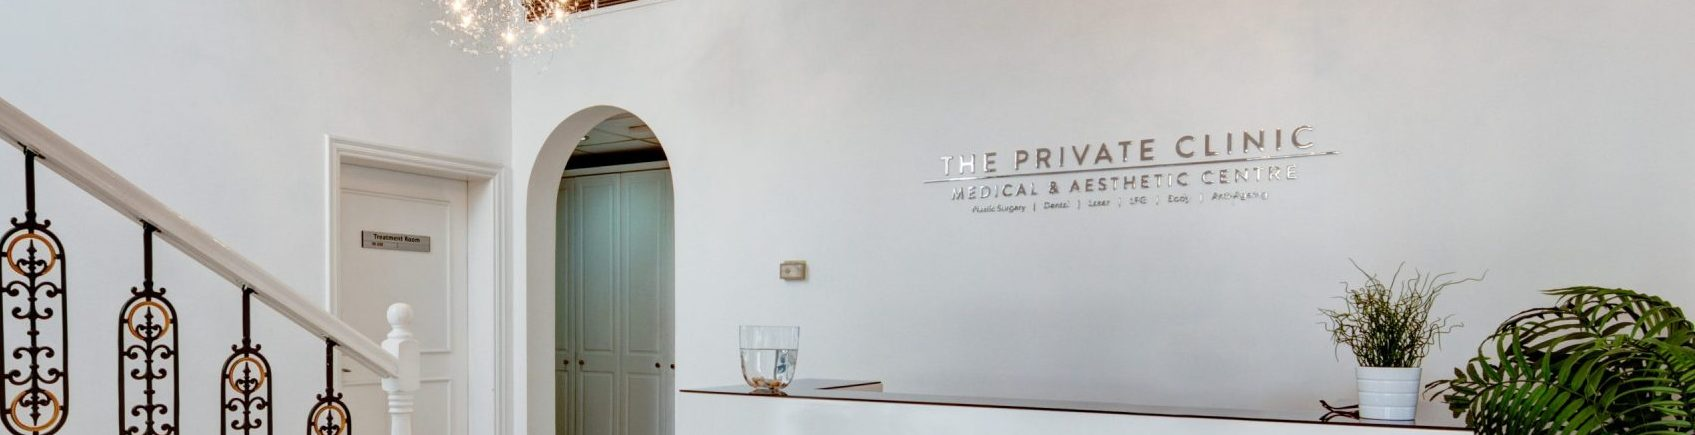 The-Private-Clinic